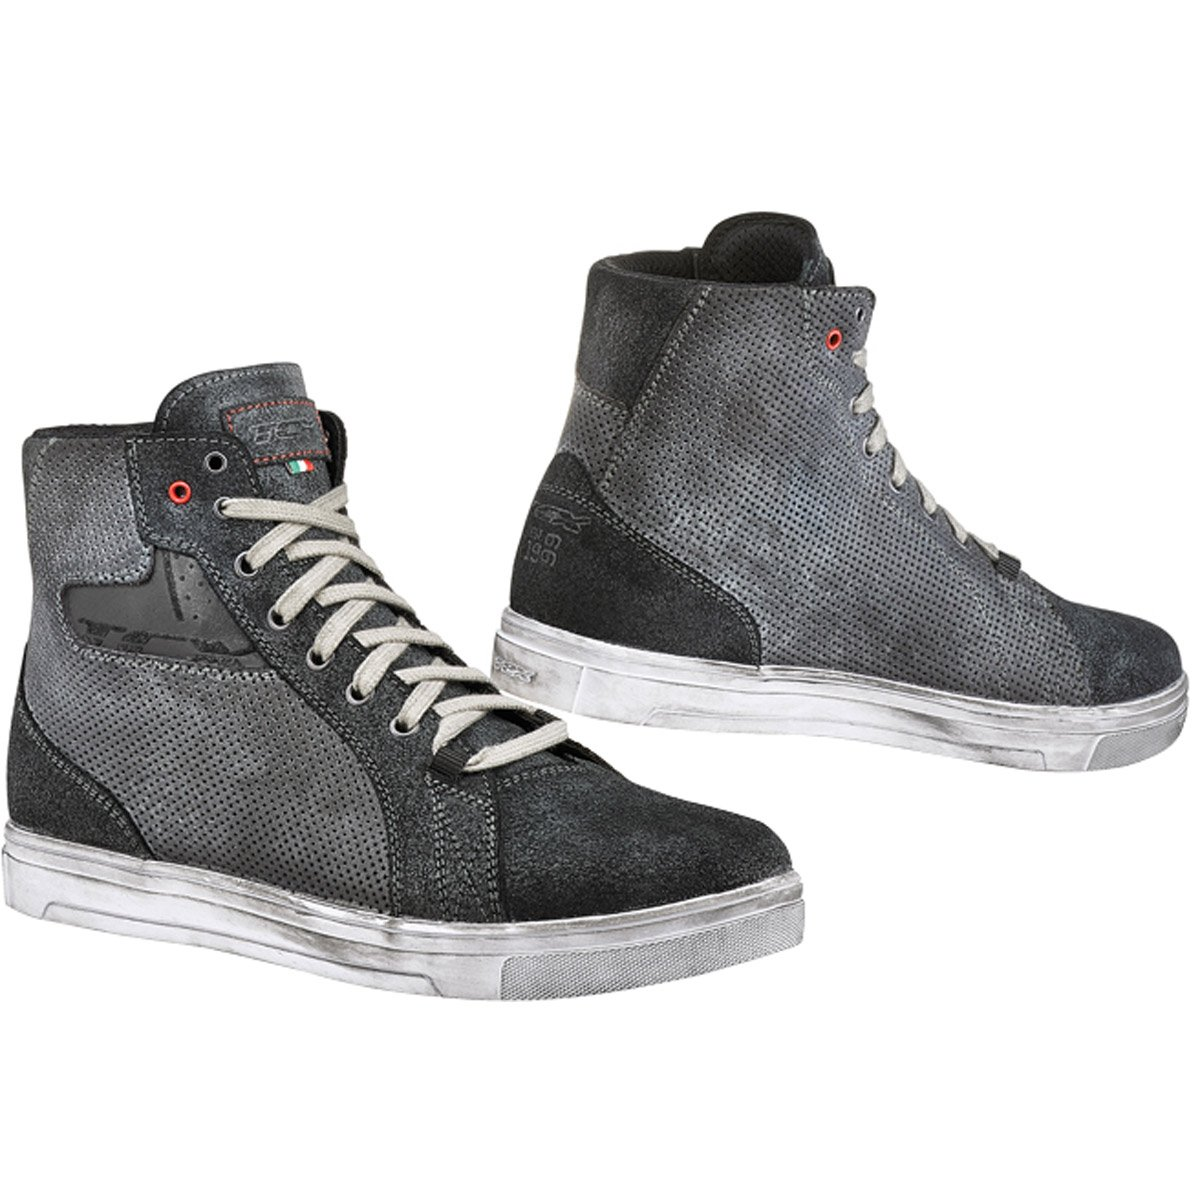 TCX Street Ace Air Men's Street Motorcycle Shoes - Anthracite / 39